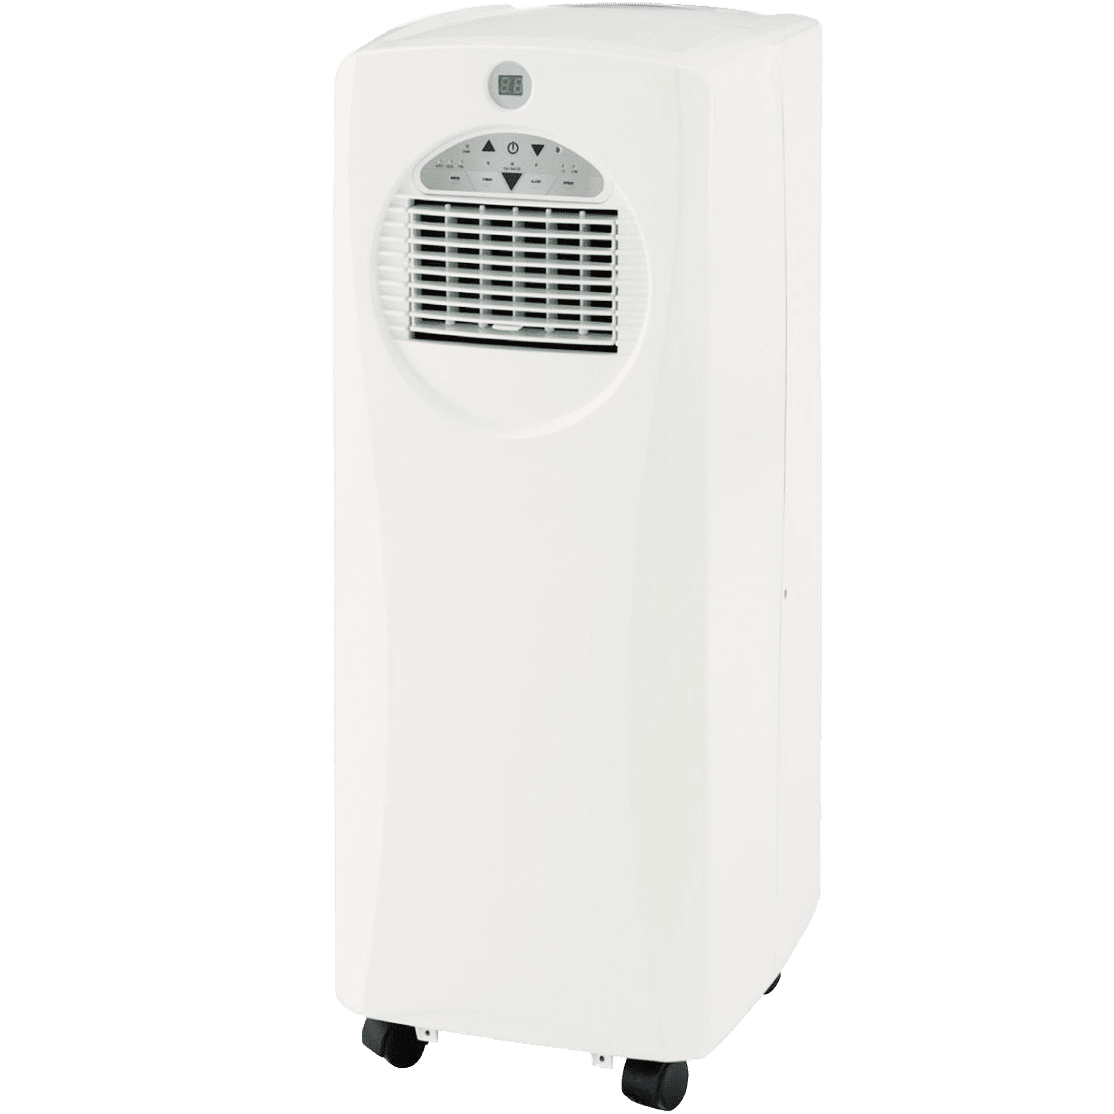 Sunpentown WA-1061H 10,000 BTU Portable Air Conditioner & Heater su2308